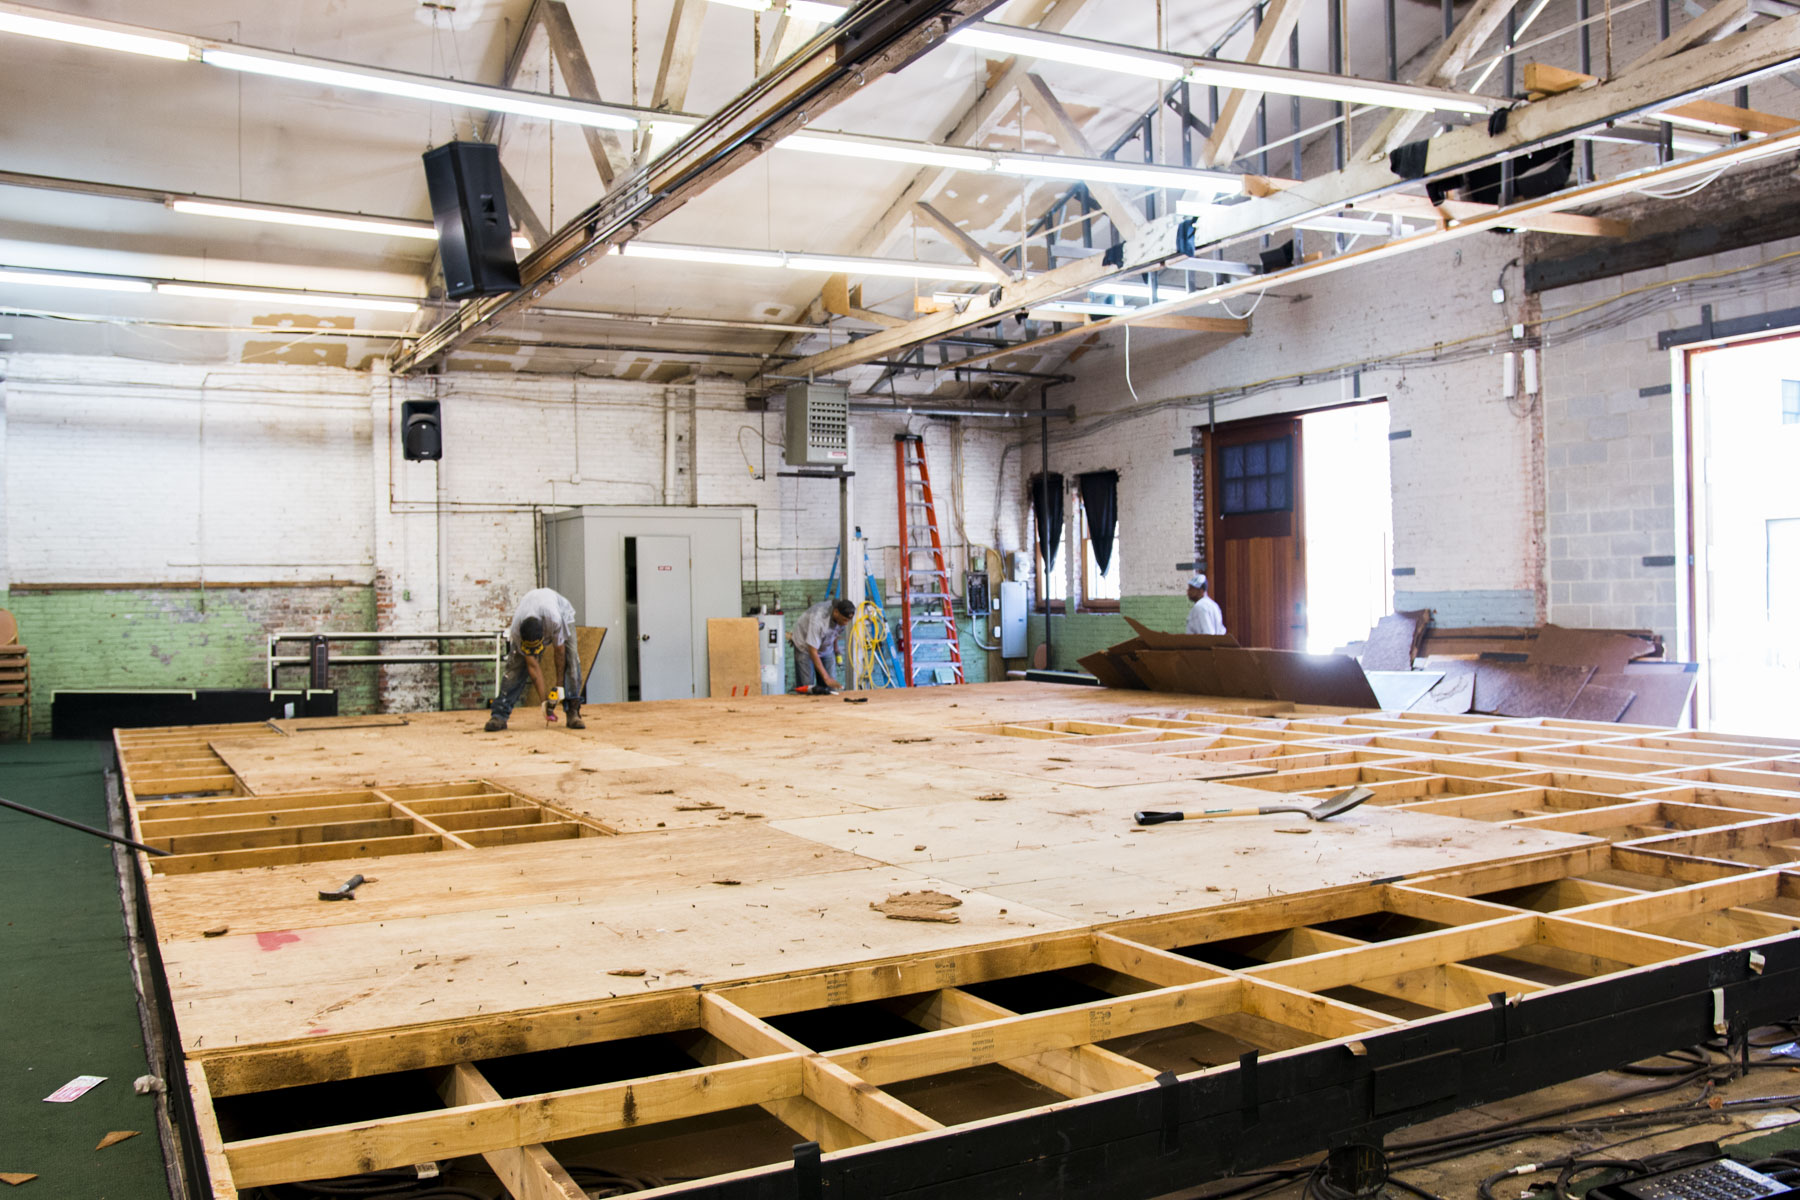 Deconstructing the stage